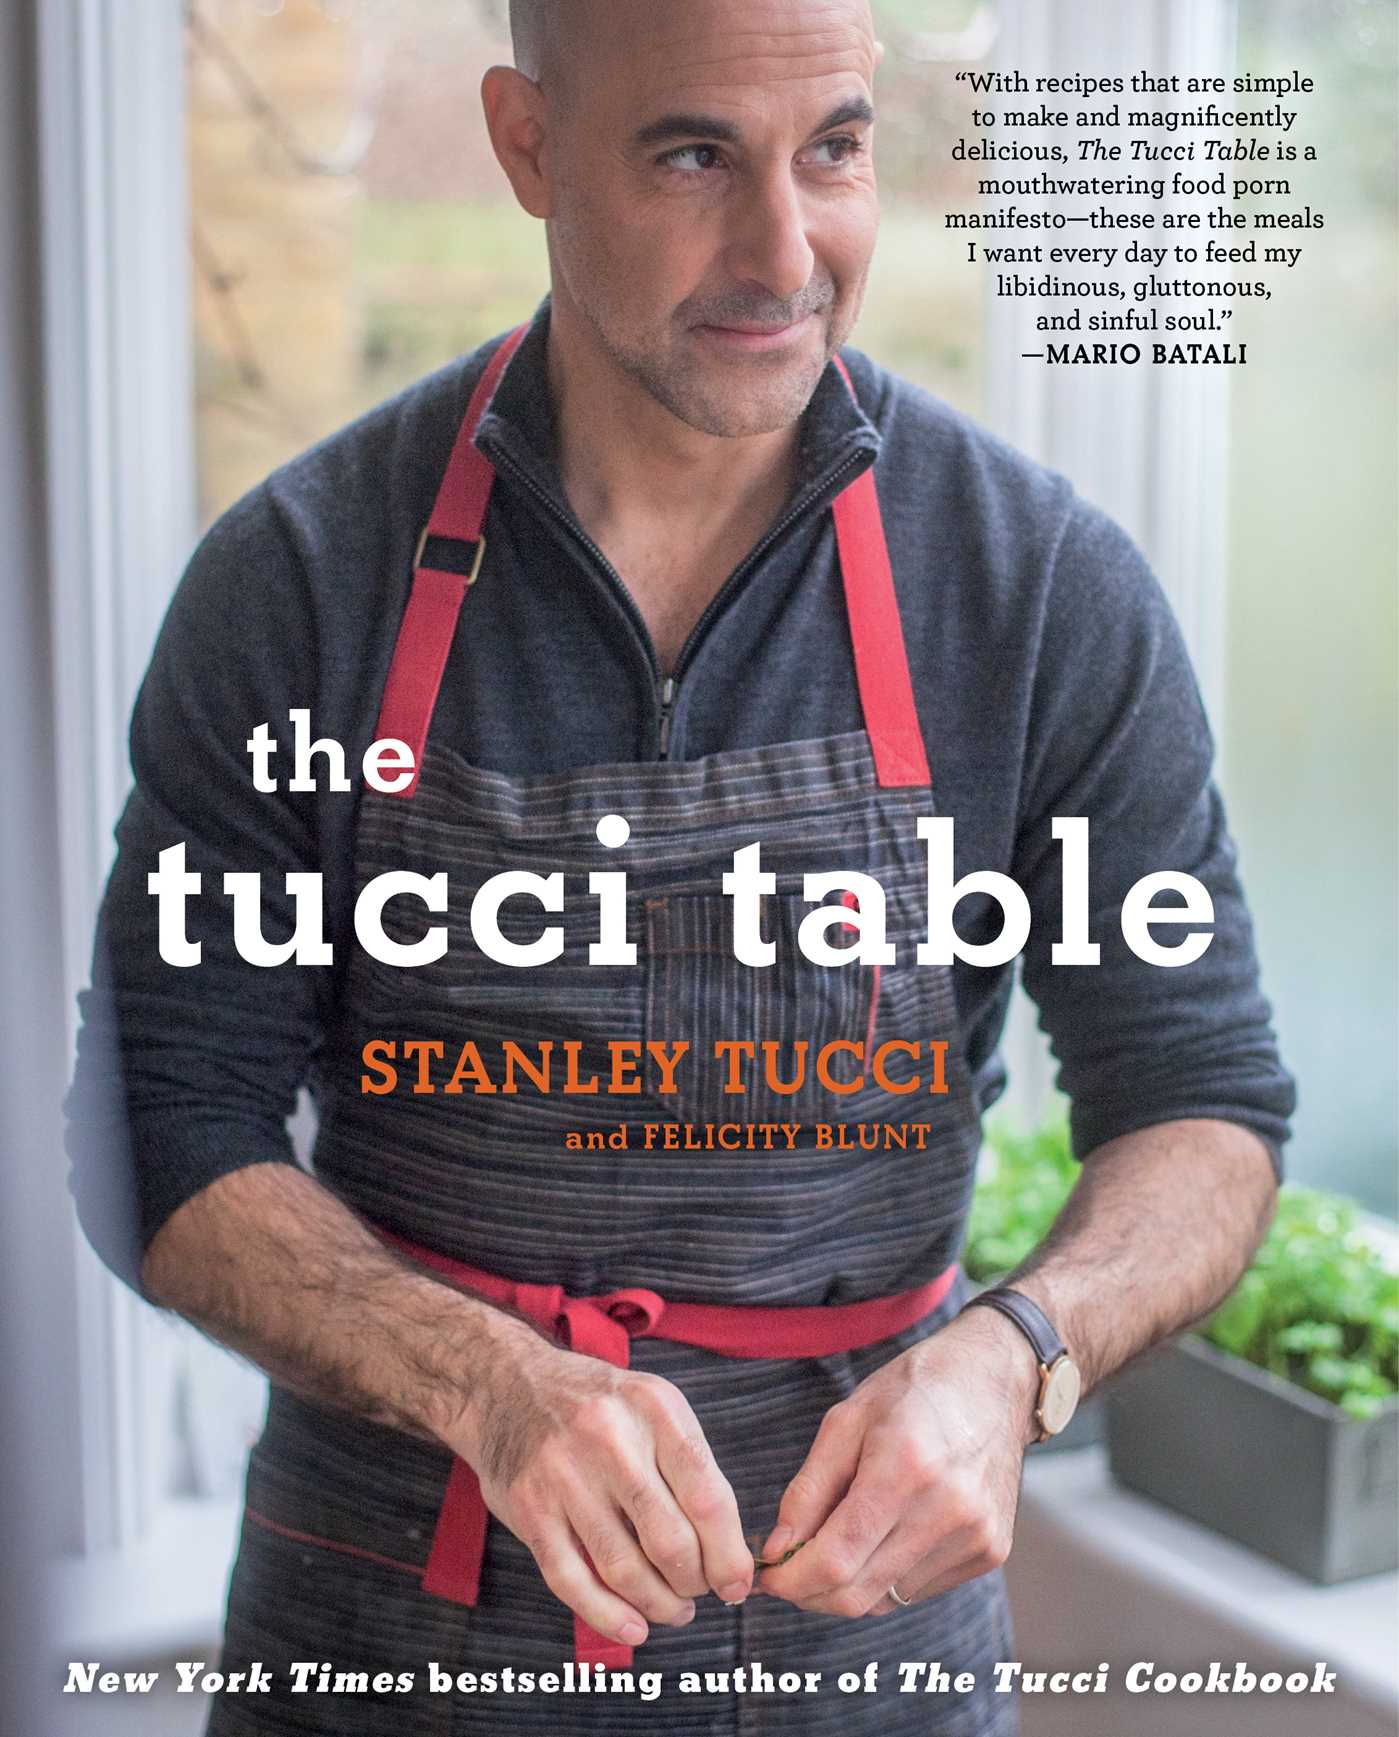 Tucci table 9781476738567 hr